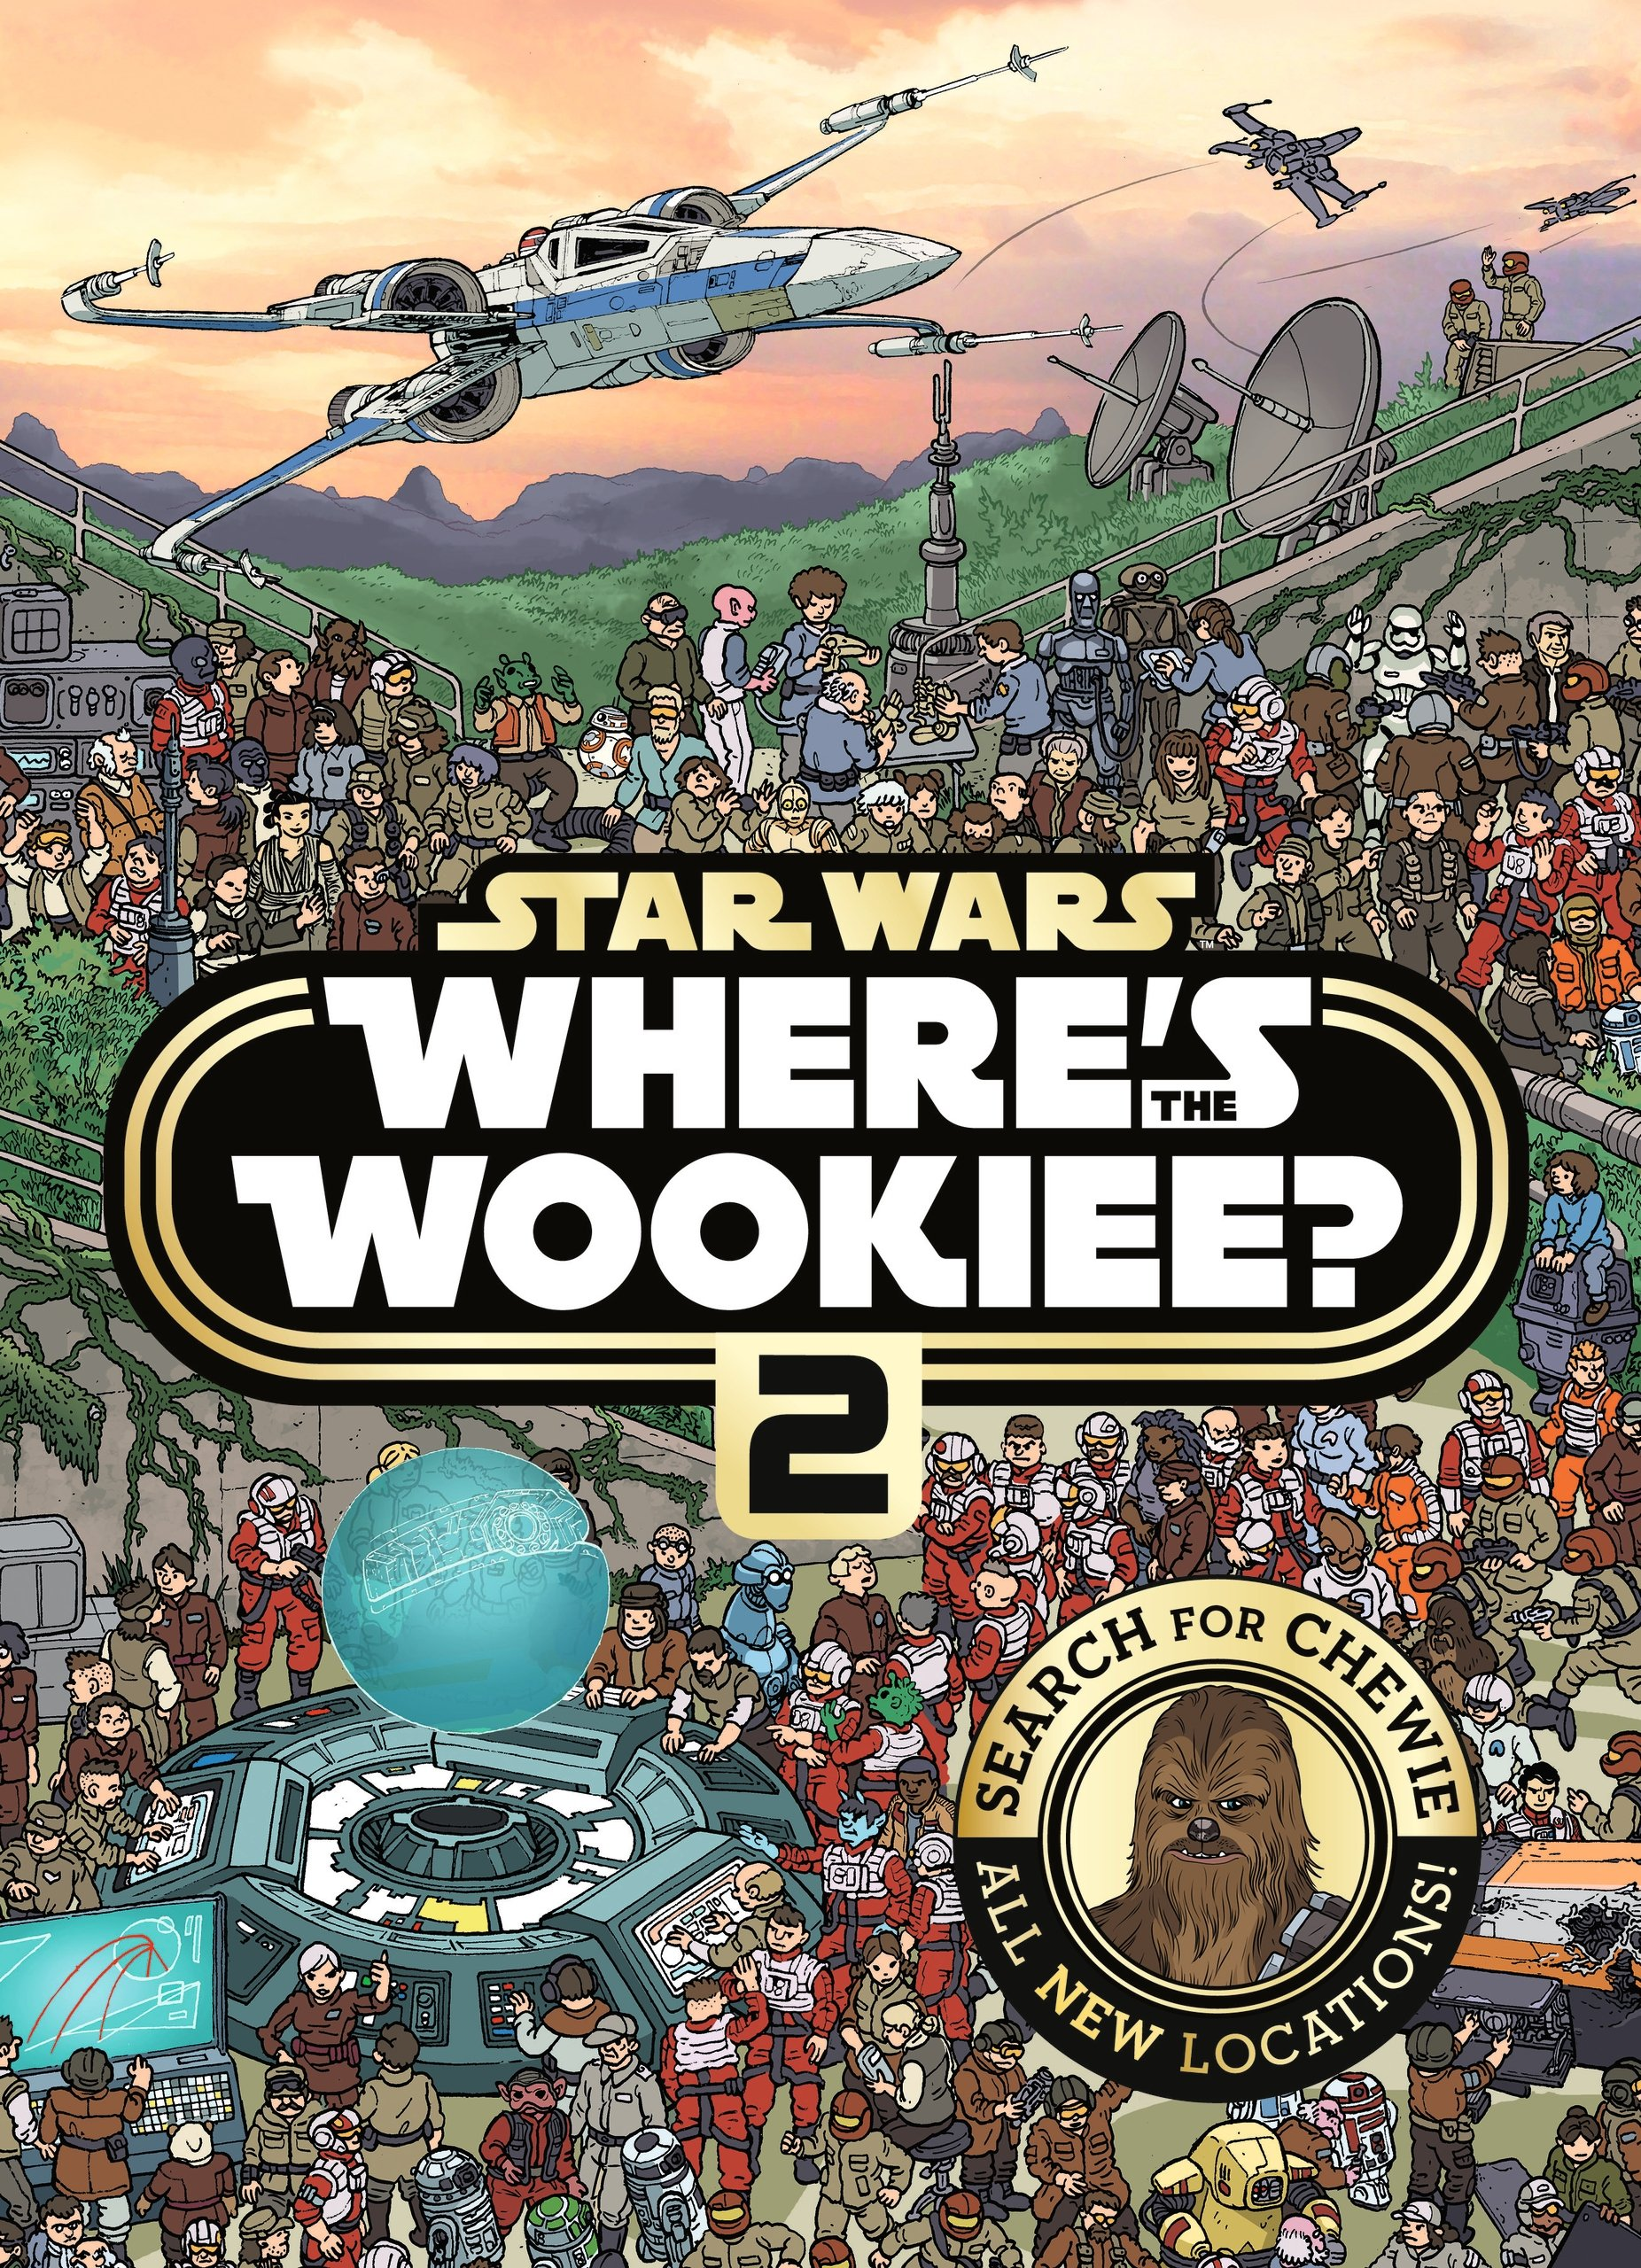 Star Wars - Where's the Wookiee 2 (Star Wars Search & Find)